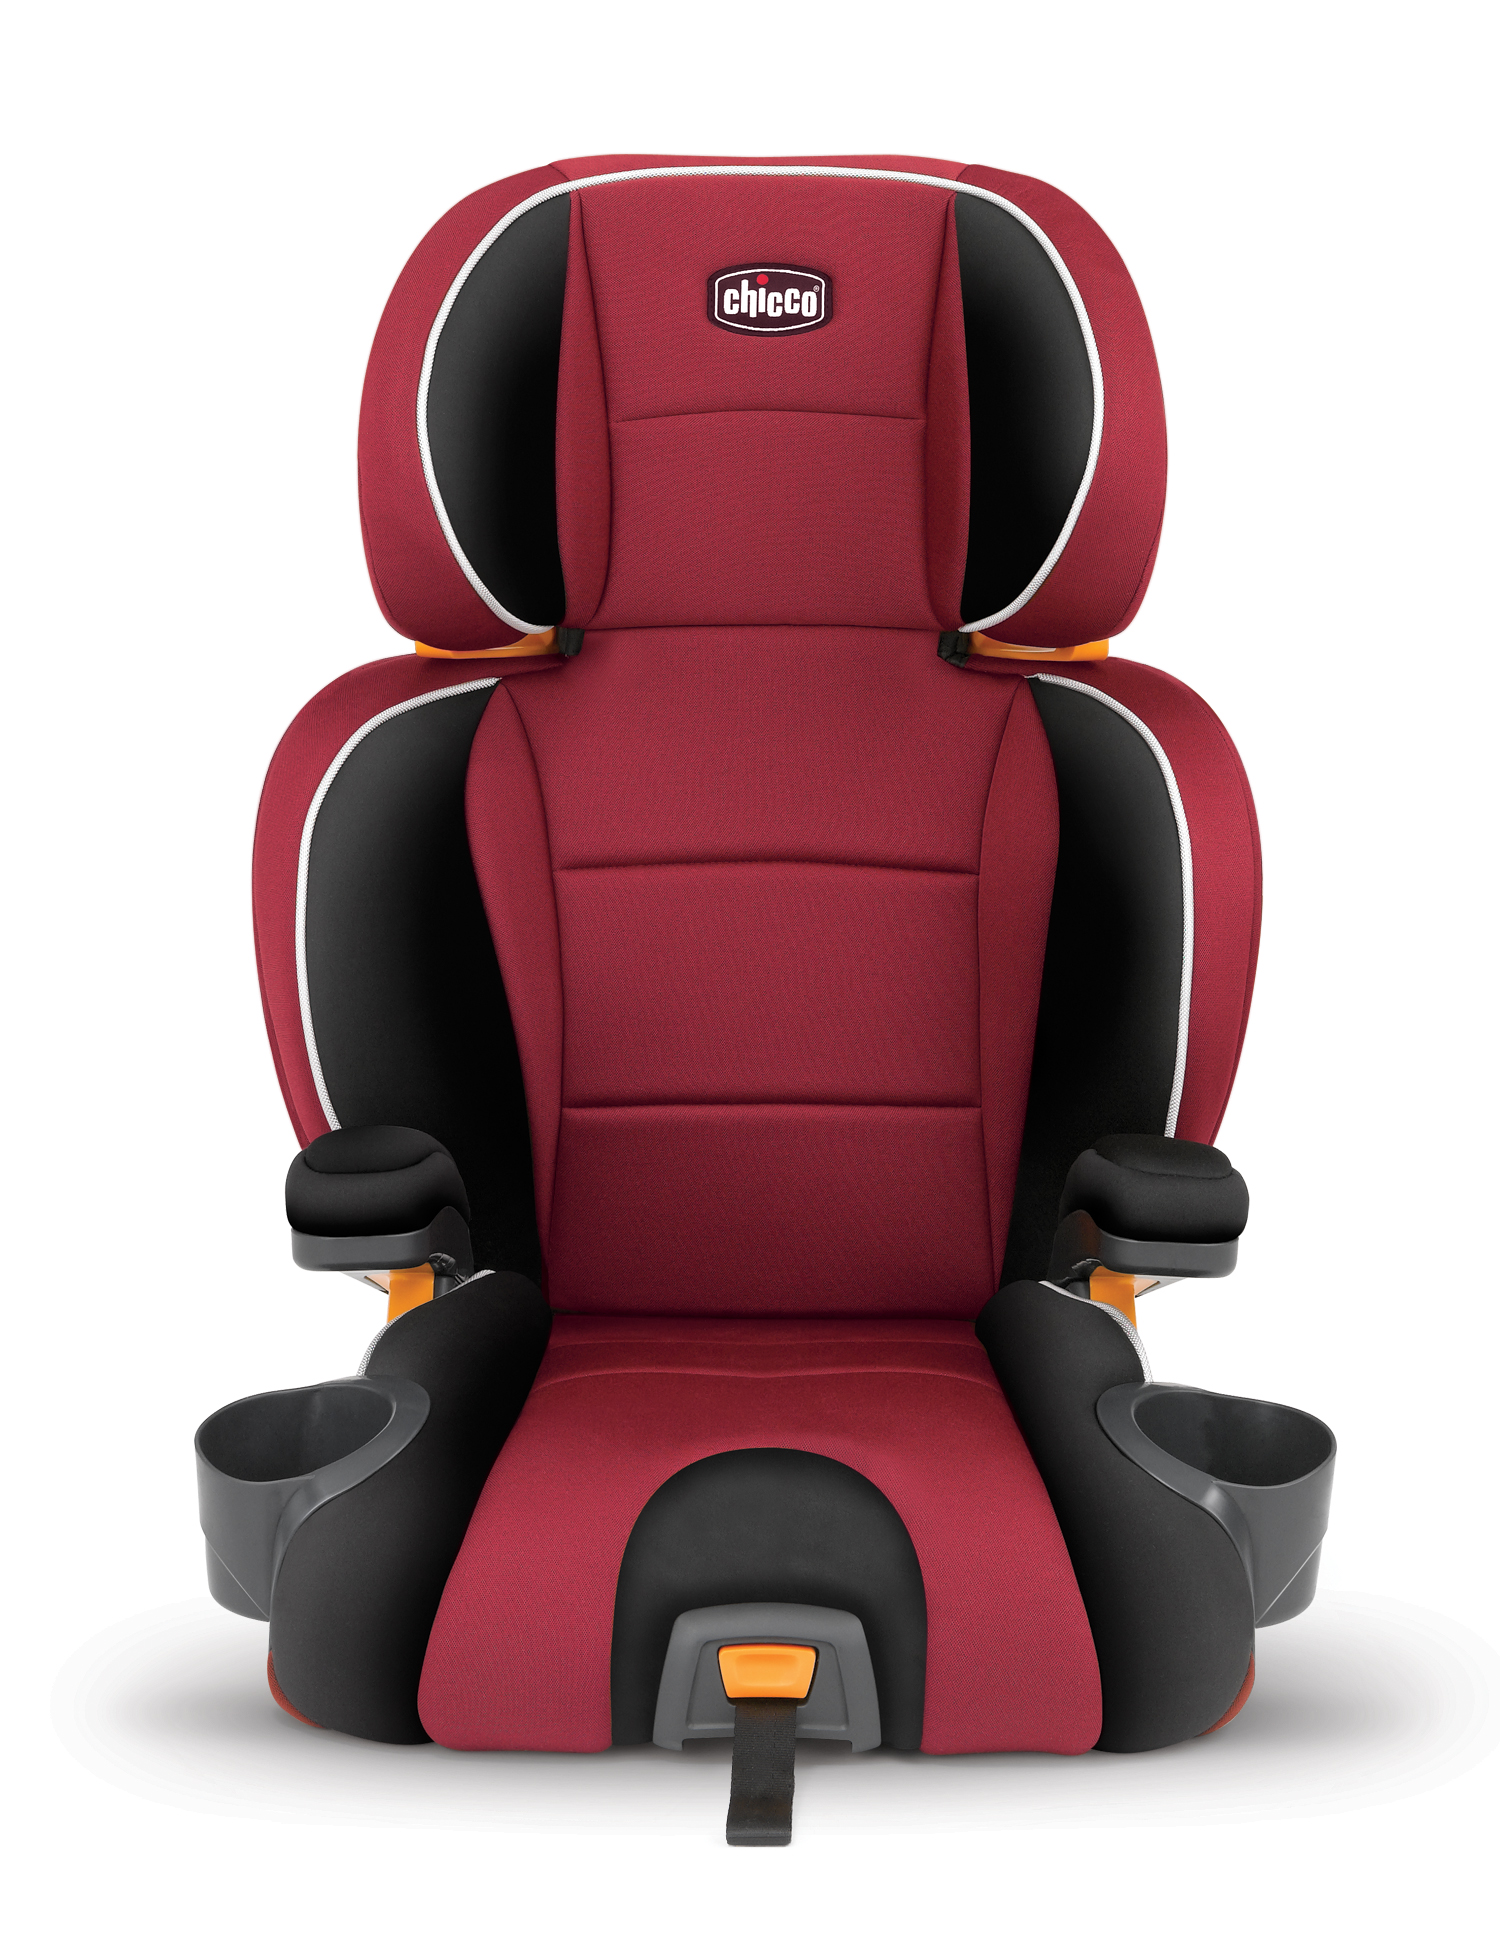 Chicco kidfit booster seat image is loading toddler car